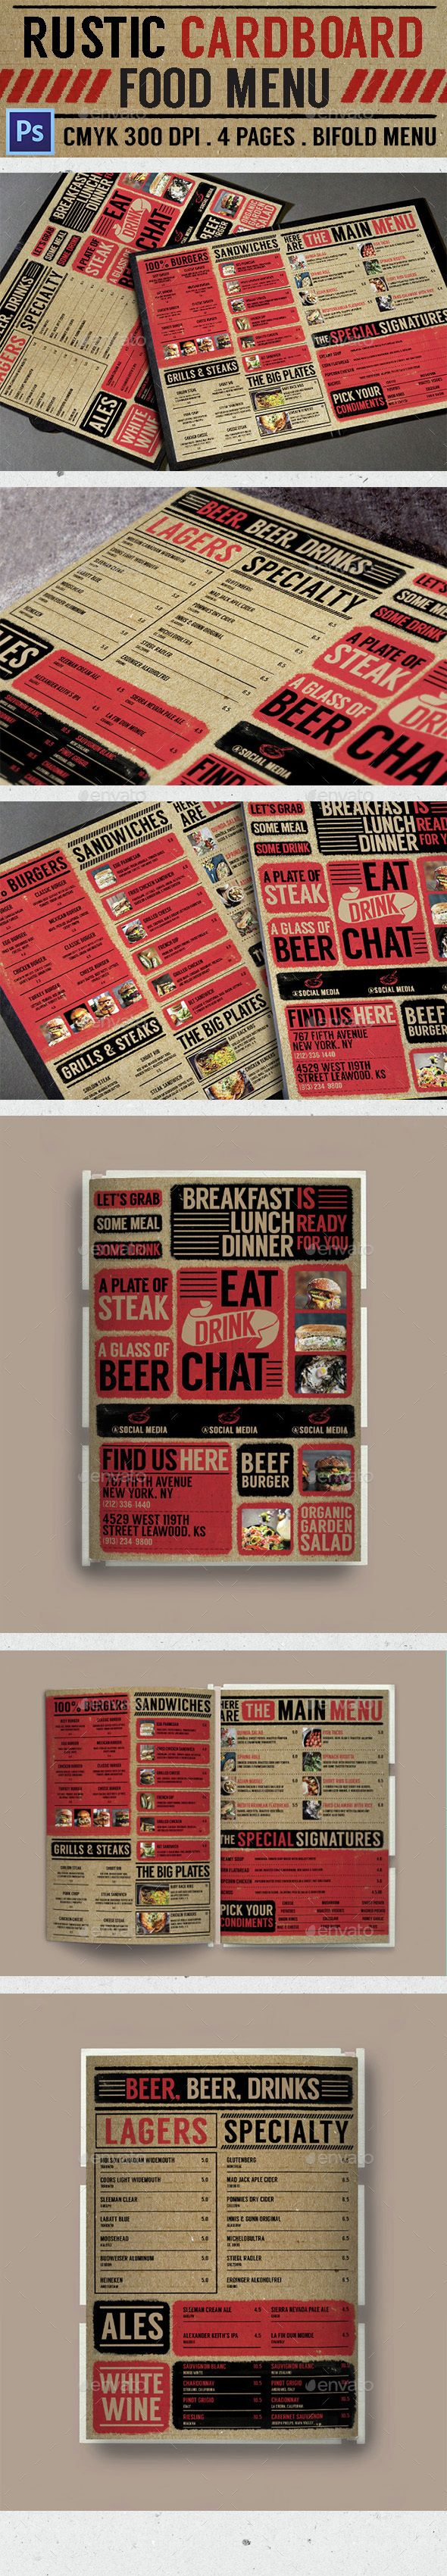 26 best bar images on pinterest drink menu food menu template and